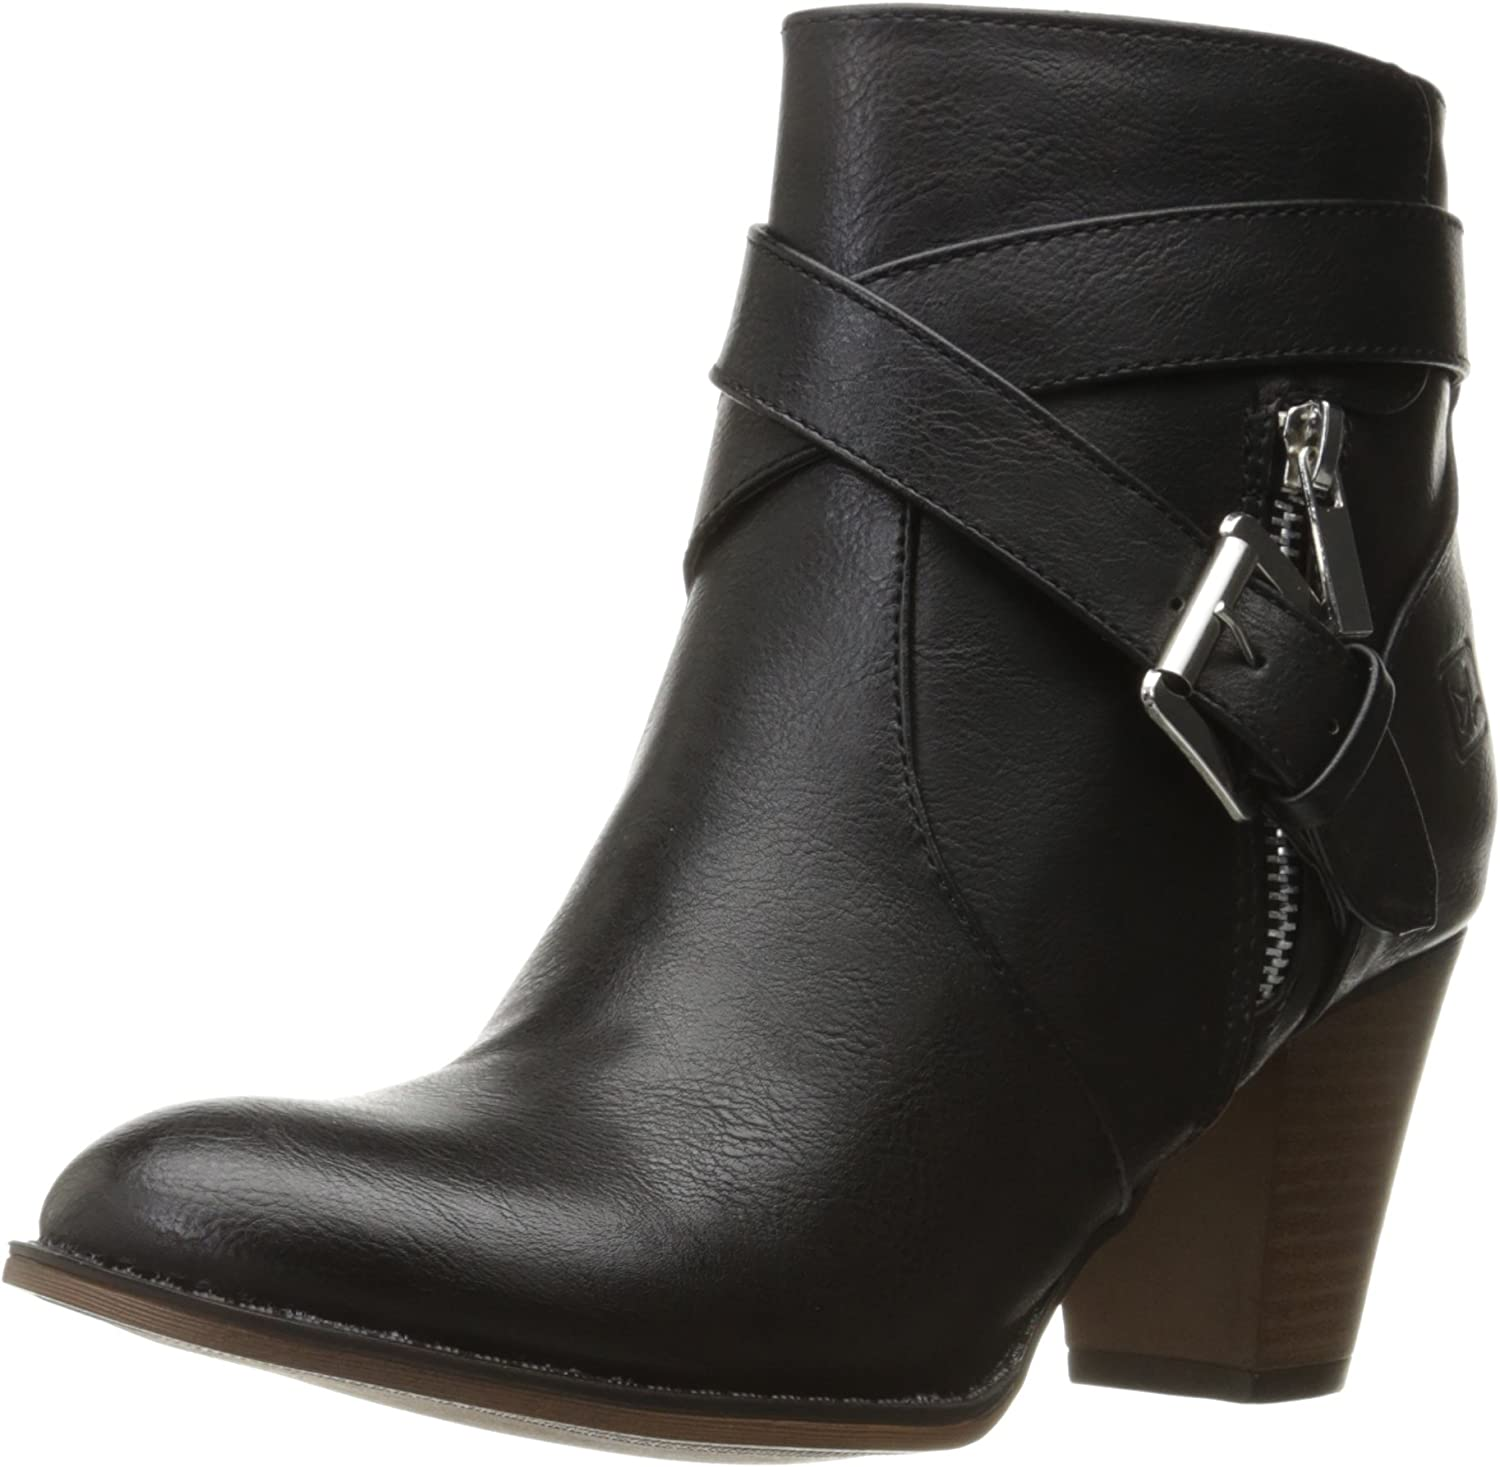 Dirty Laundry by Chinese Laundry Women's Dude Ranch Boot